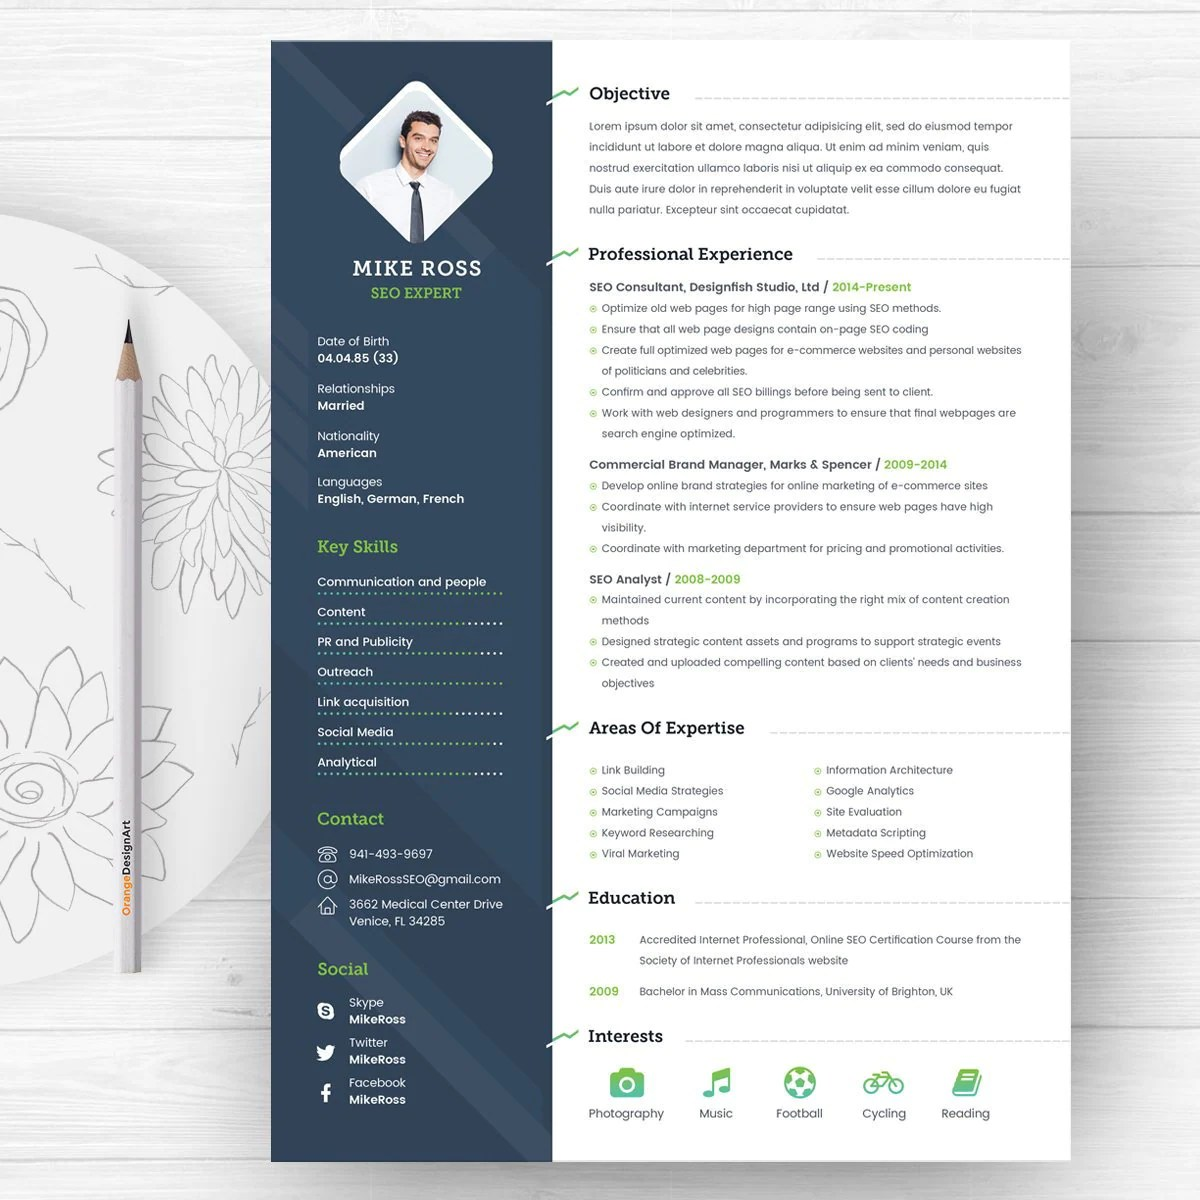 Online Graphic Designer Cover Letter Resume Template With Photo Professional Resume And Creative Cv Template Business Card Design Cover Letter Template Word Resume